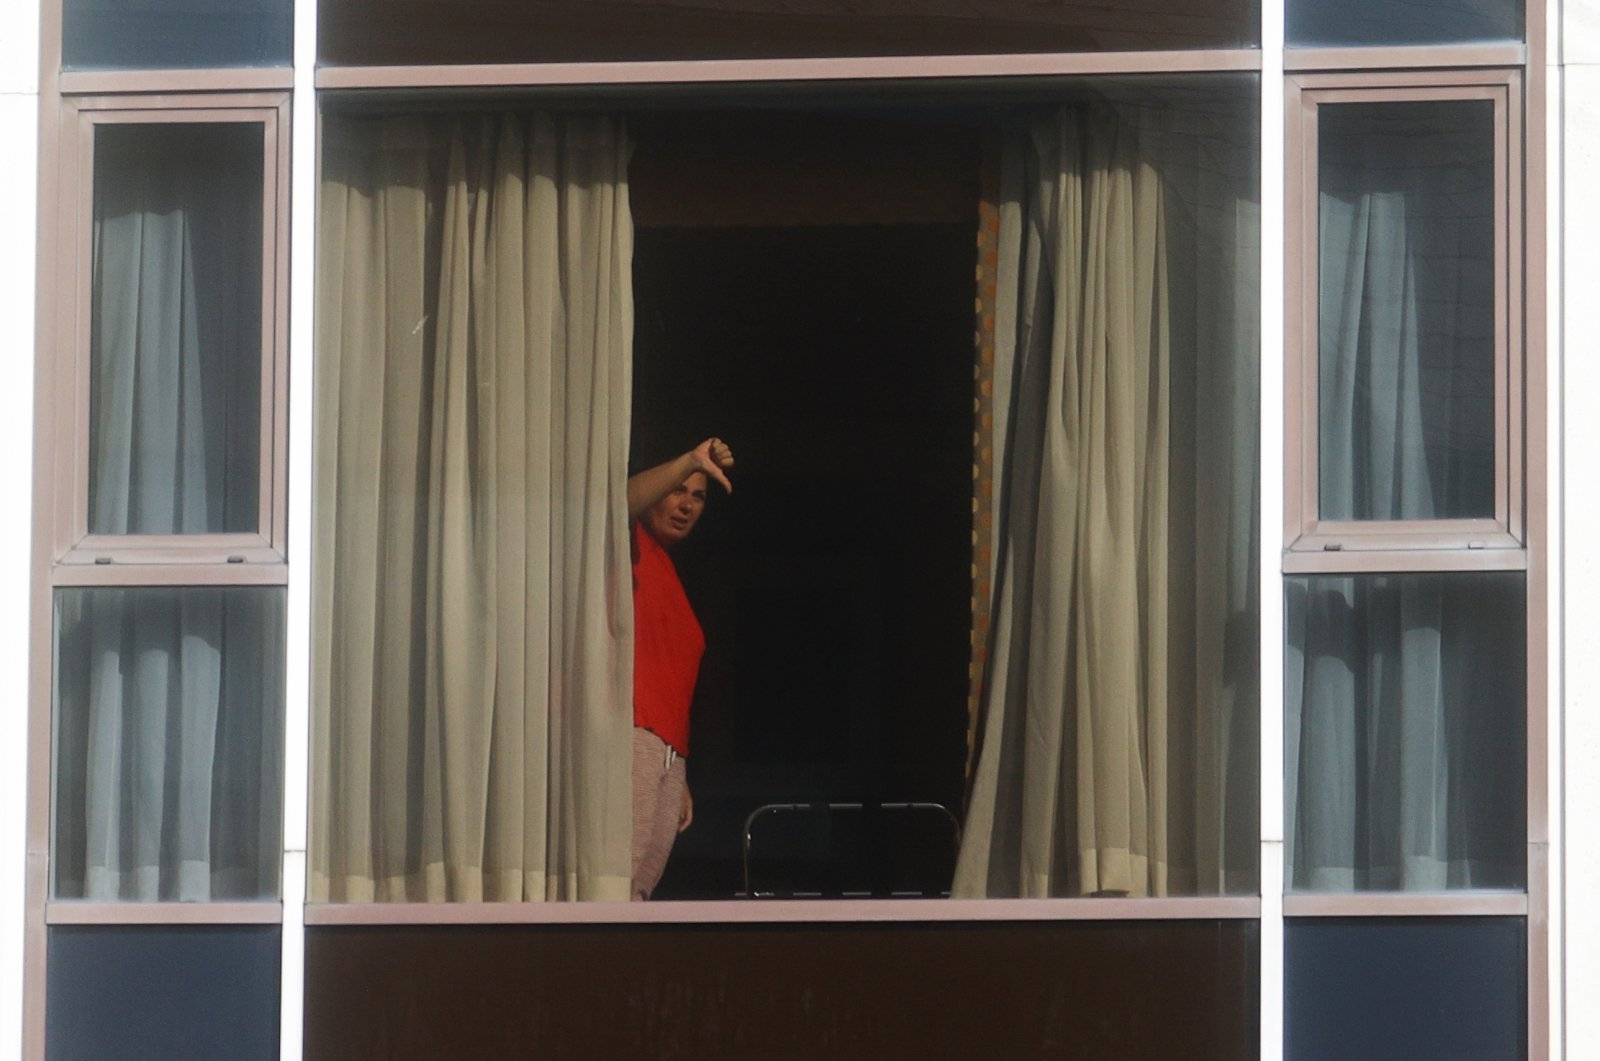 """A woman gestures from the window of the Radisson Blu Hotel at Heathrow Airport, as Britain introduces hotel quarantine program for arrivals from a """"red list"""" of 30 countries, in London, Britain, Feb. 15, 2021. (Reuters Photo)"""